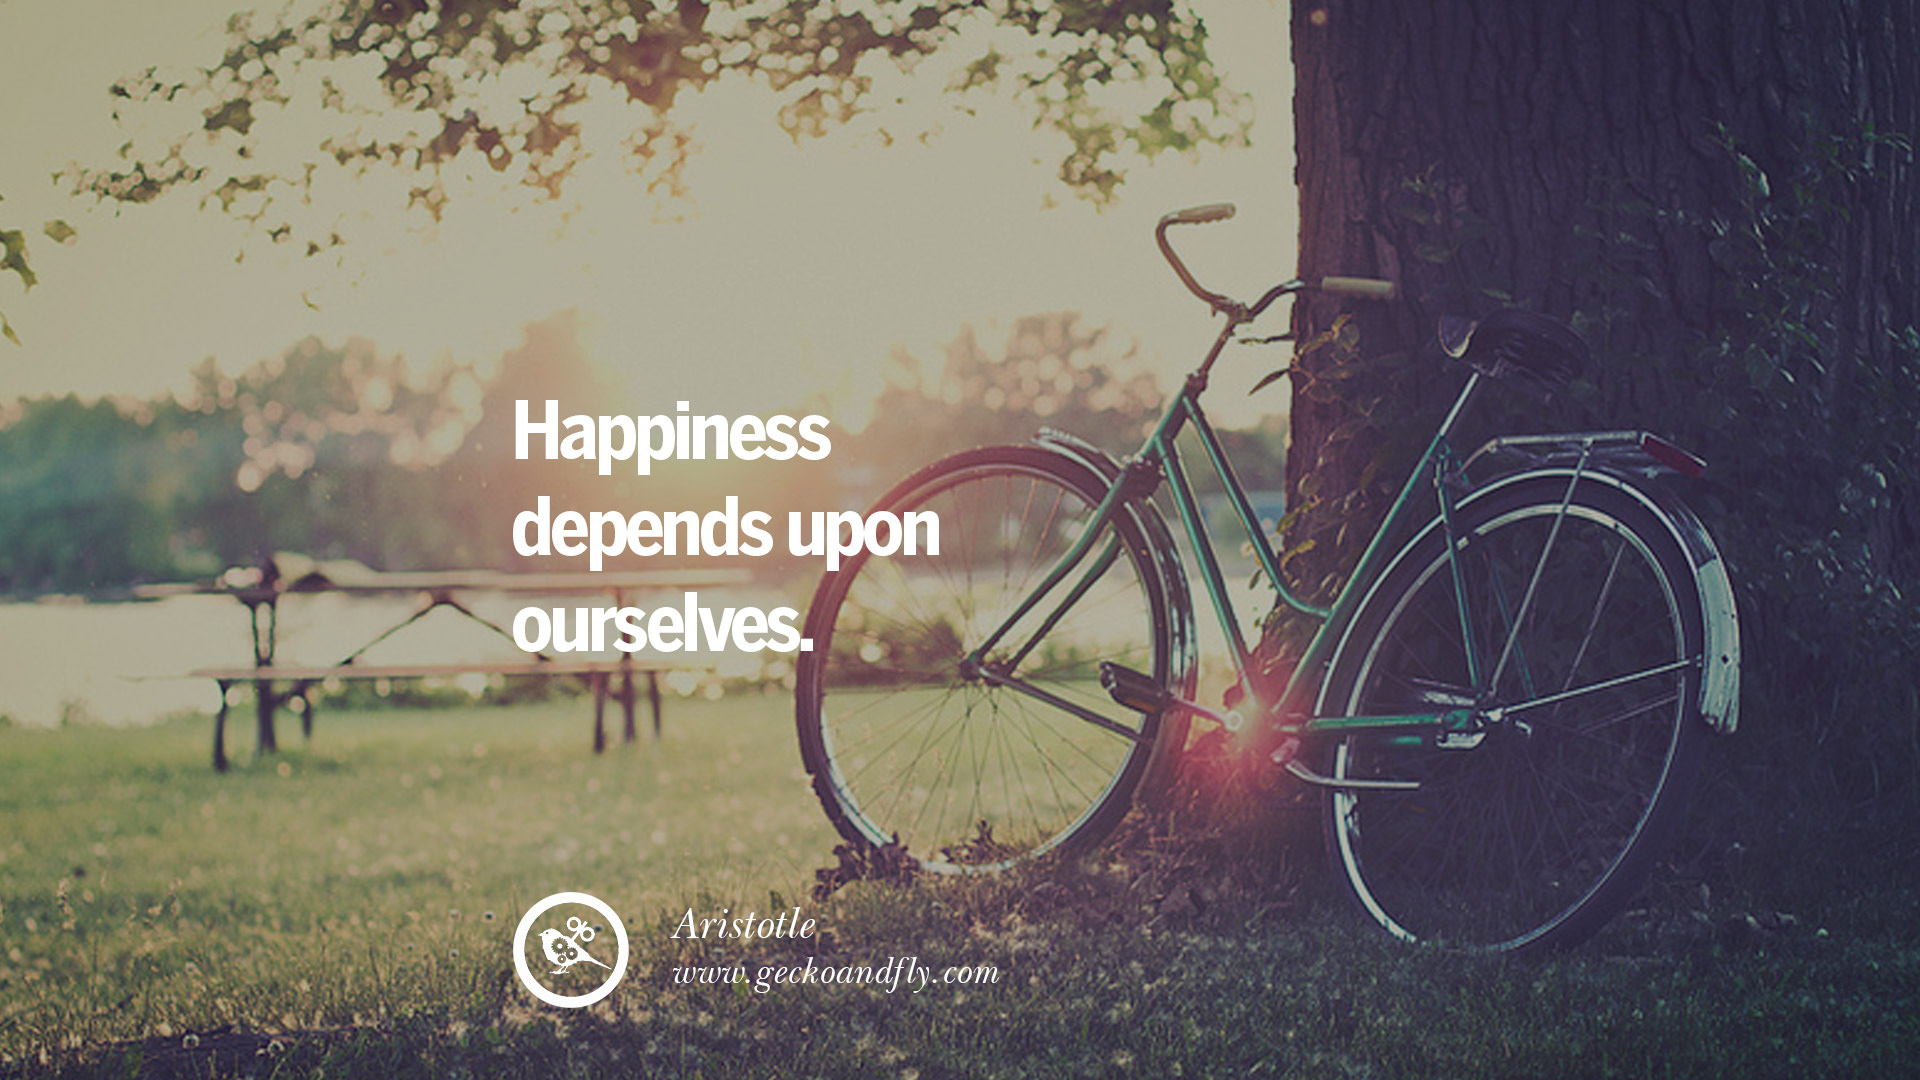 21 Quotes About Pursuit Of Happiness To Change Your Thinking